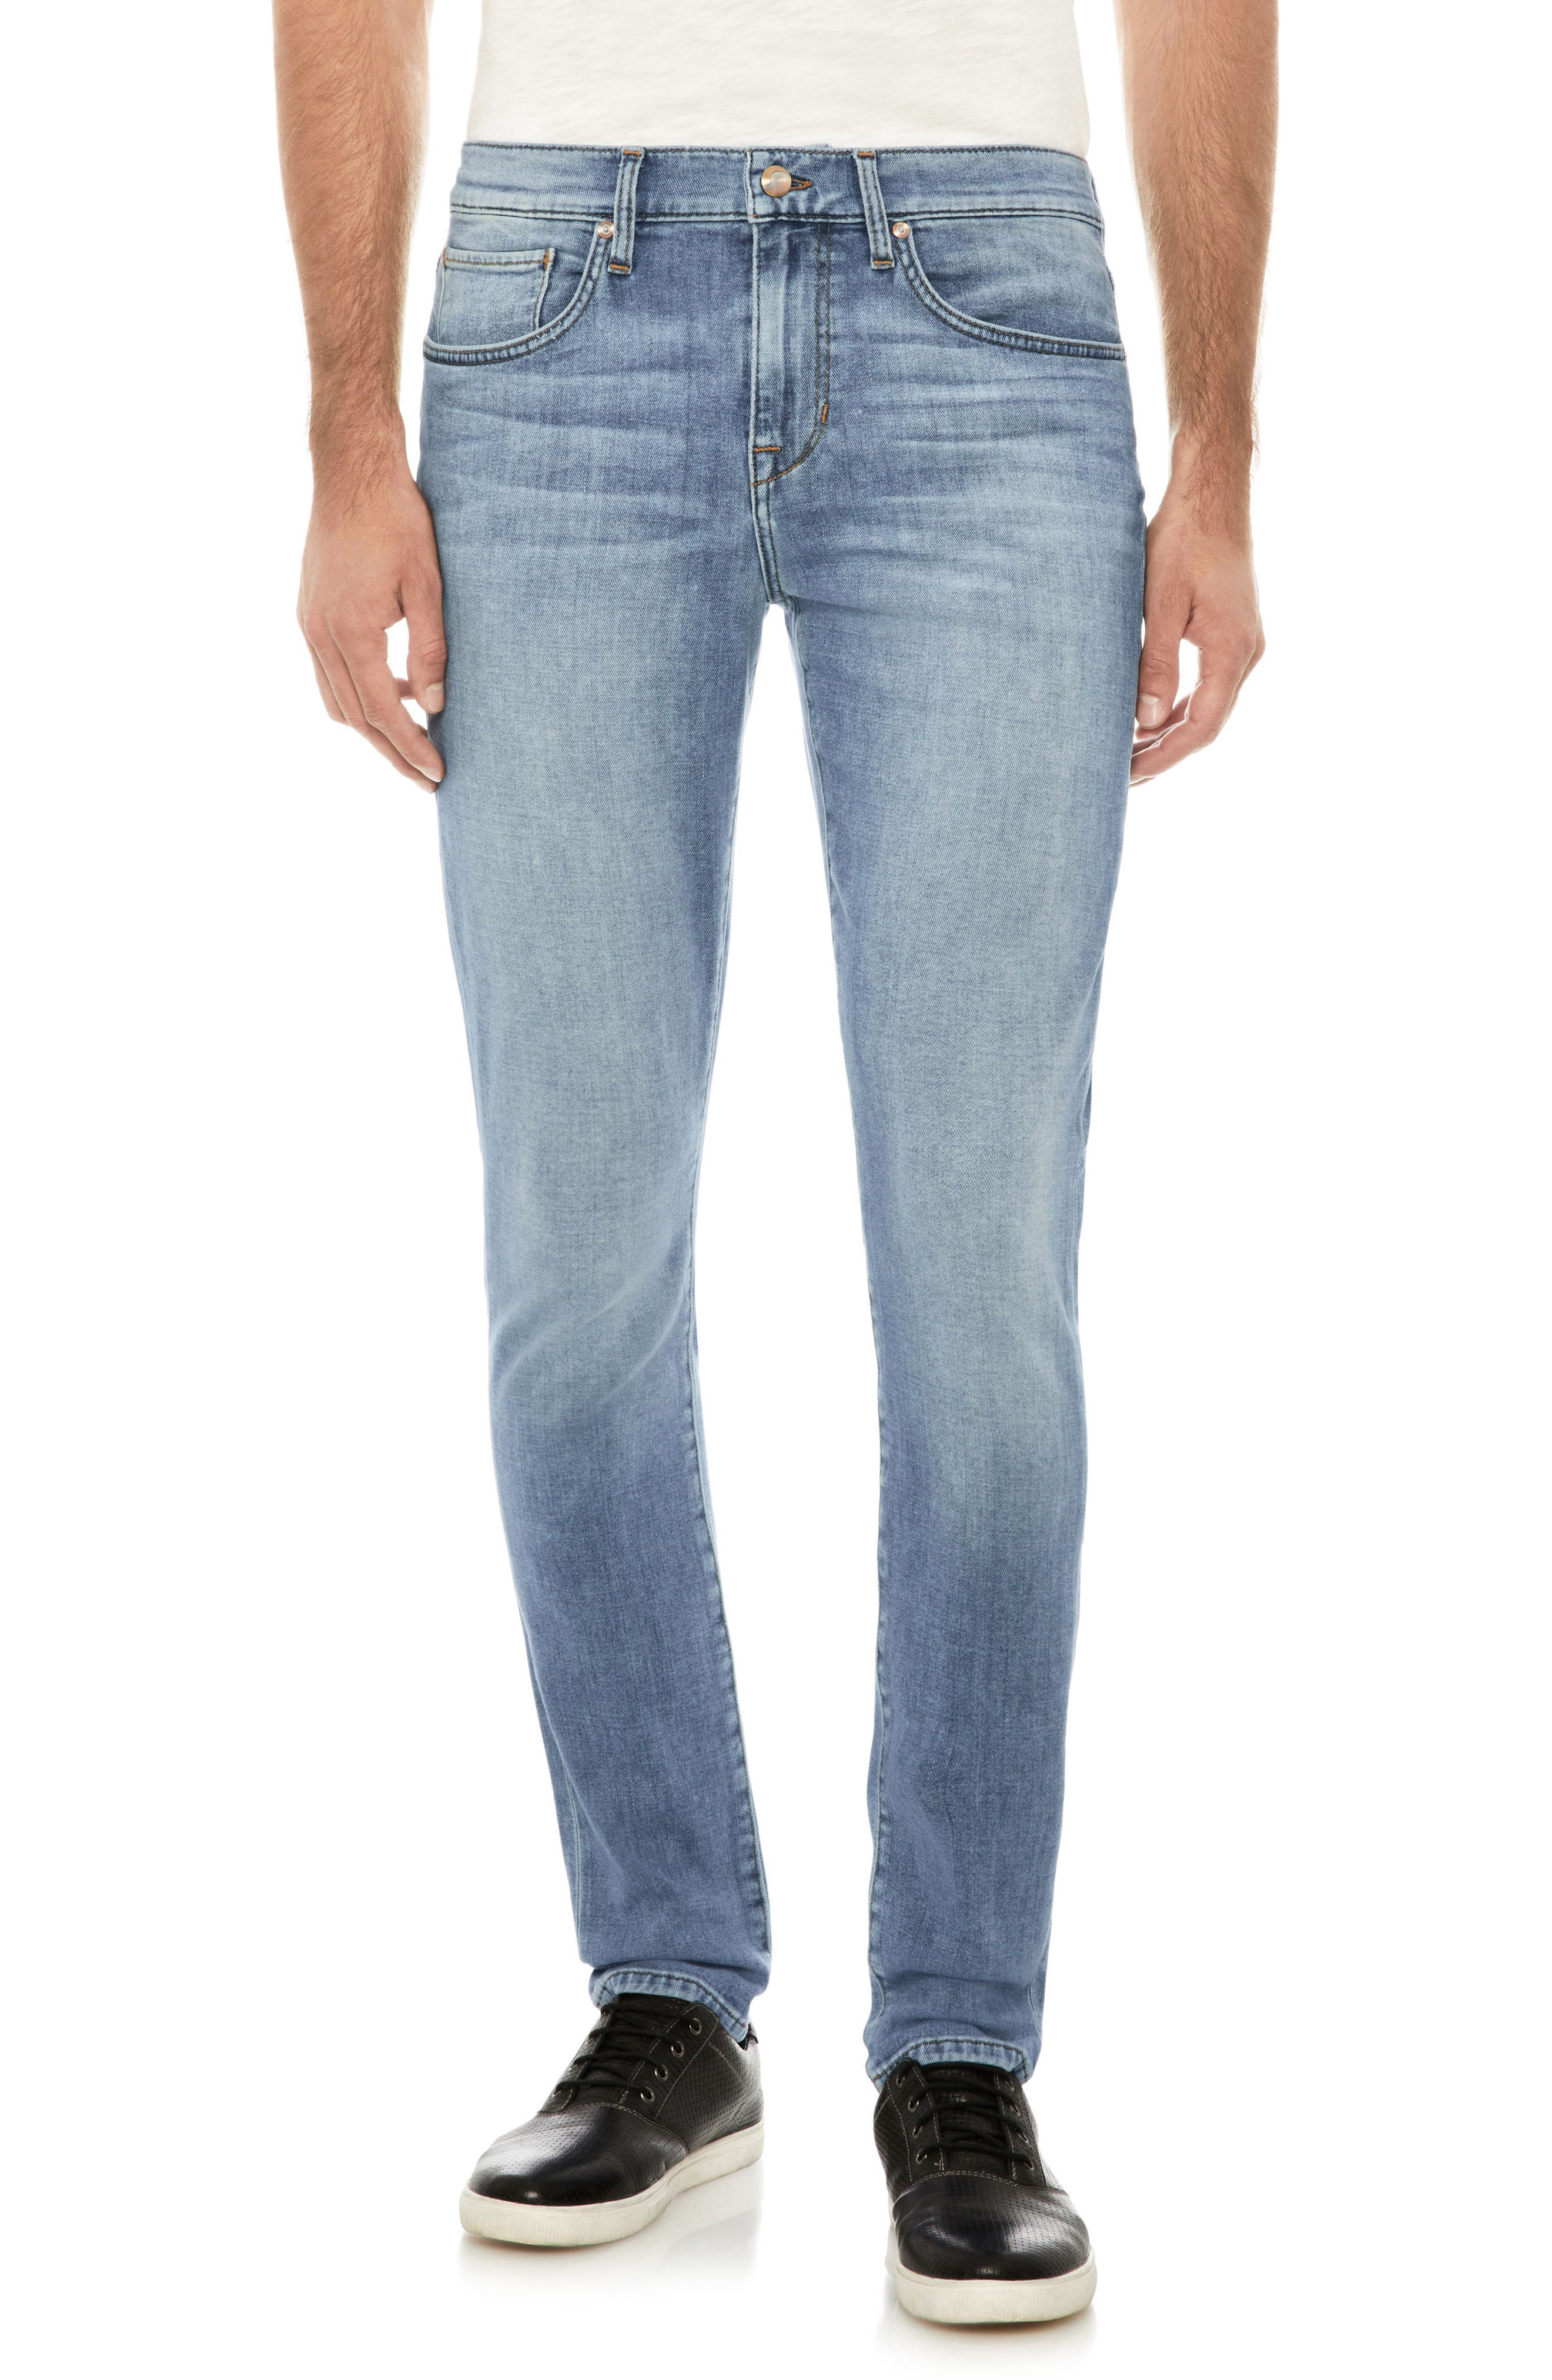 Legend Skinny Fit Jeans,                             Main thumbnail 1, color,                             Avery